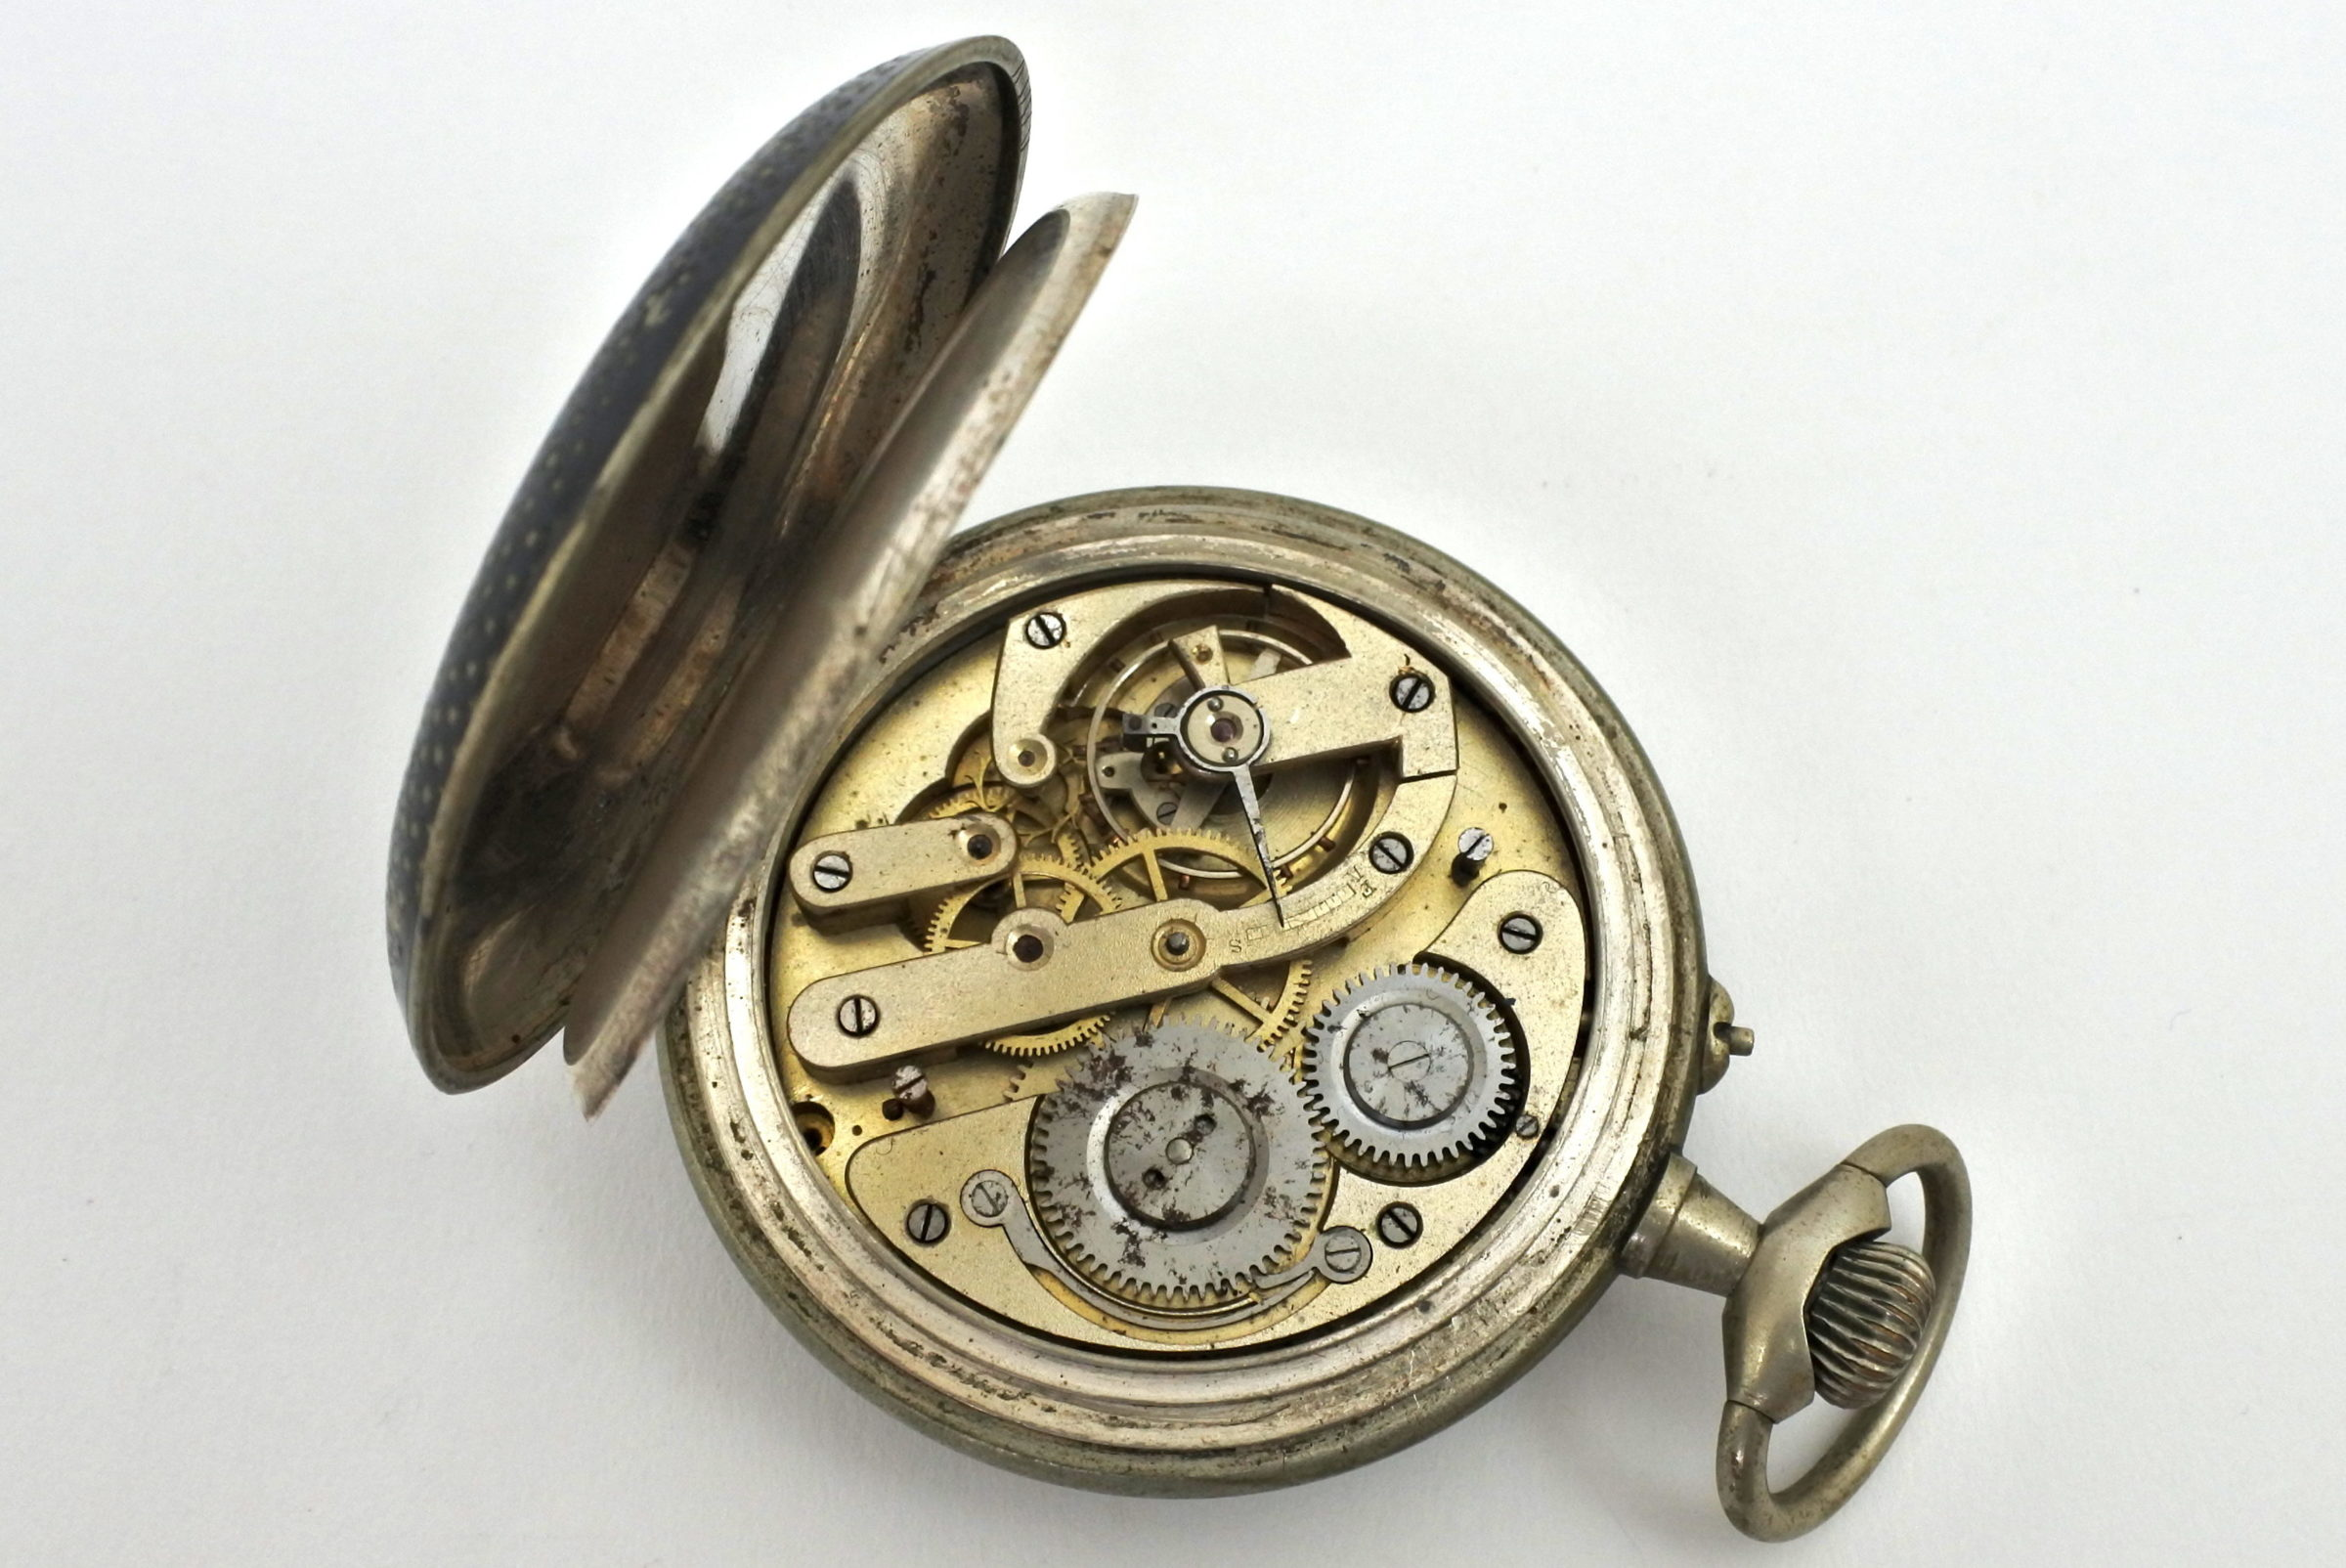 Orologio da tasca in argento e niello – Anti magnetique - 3